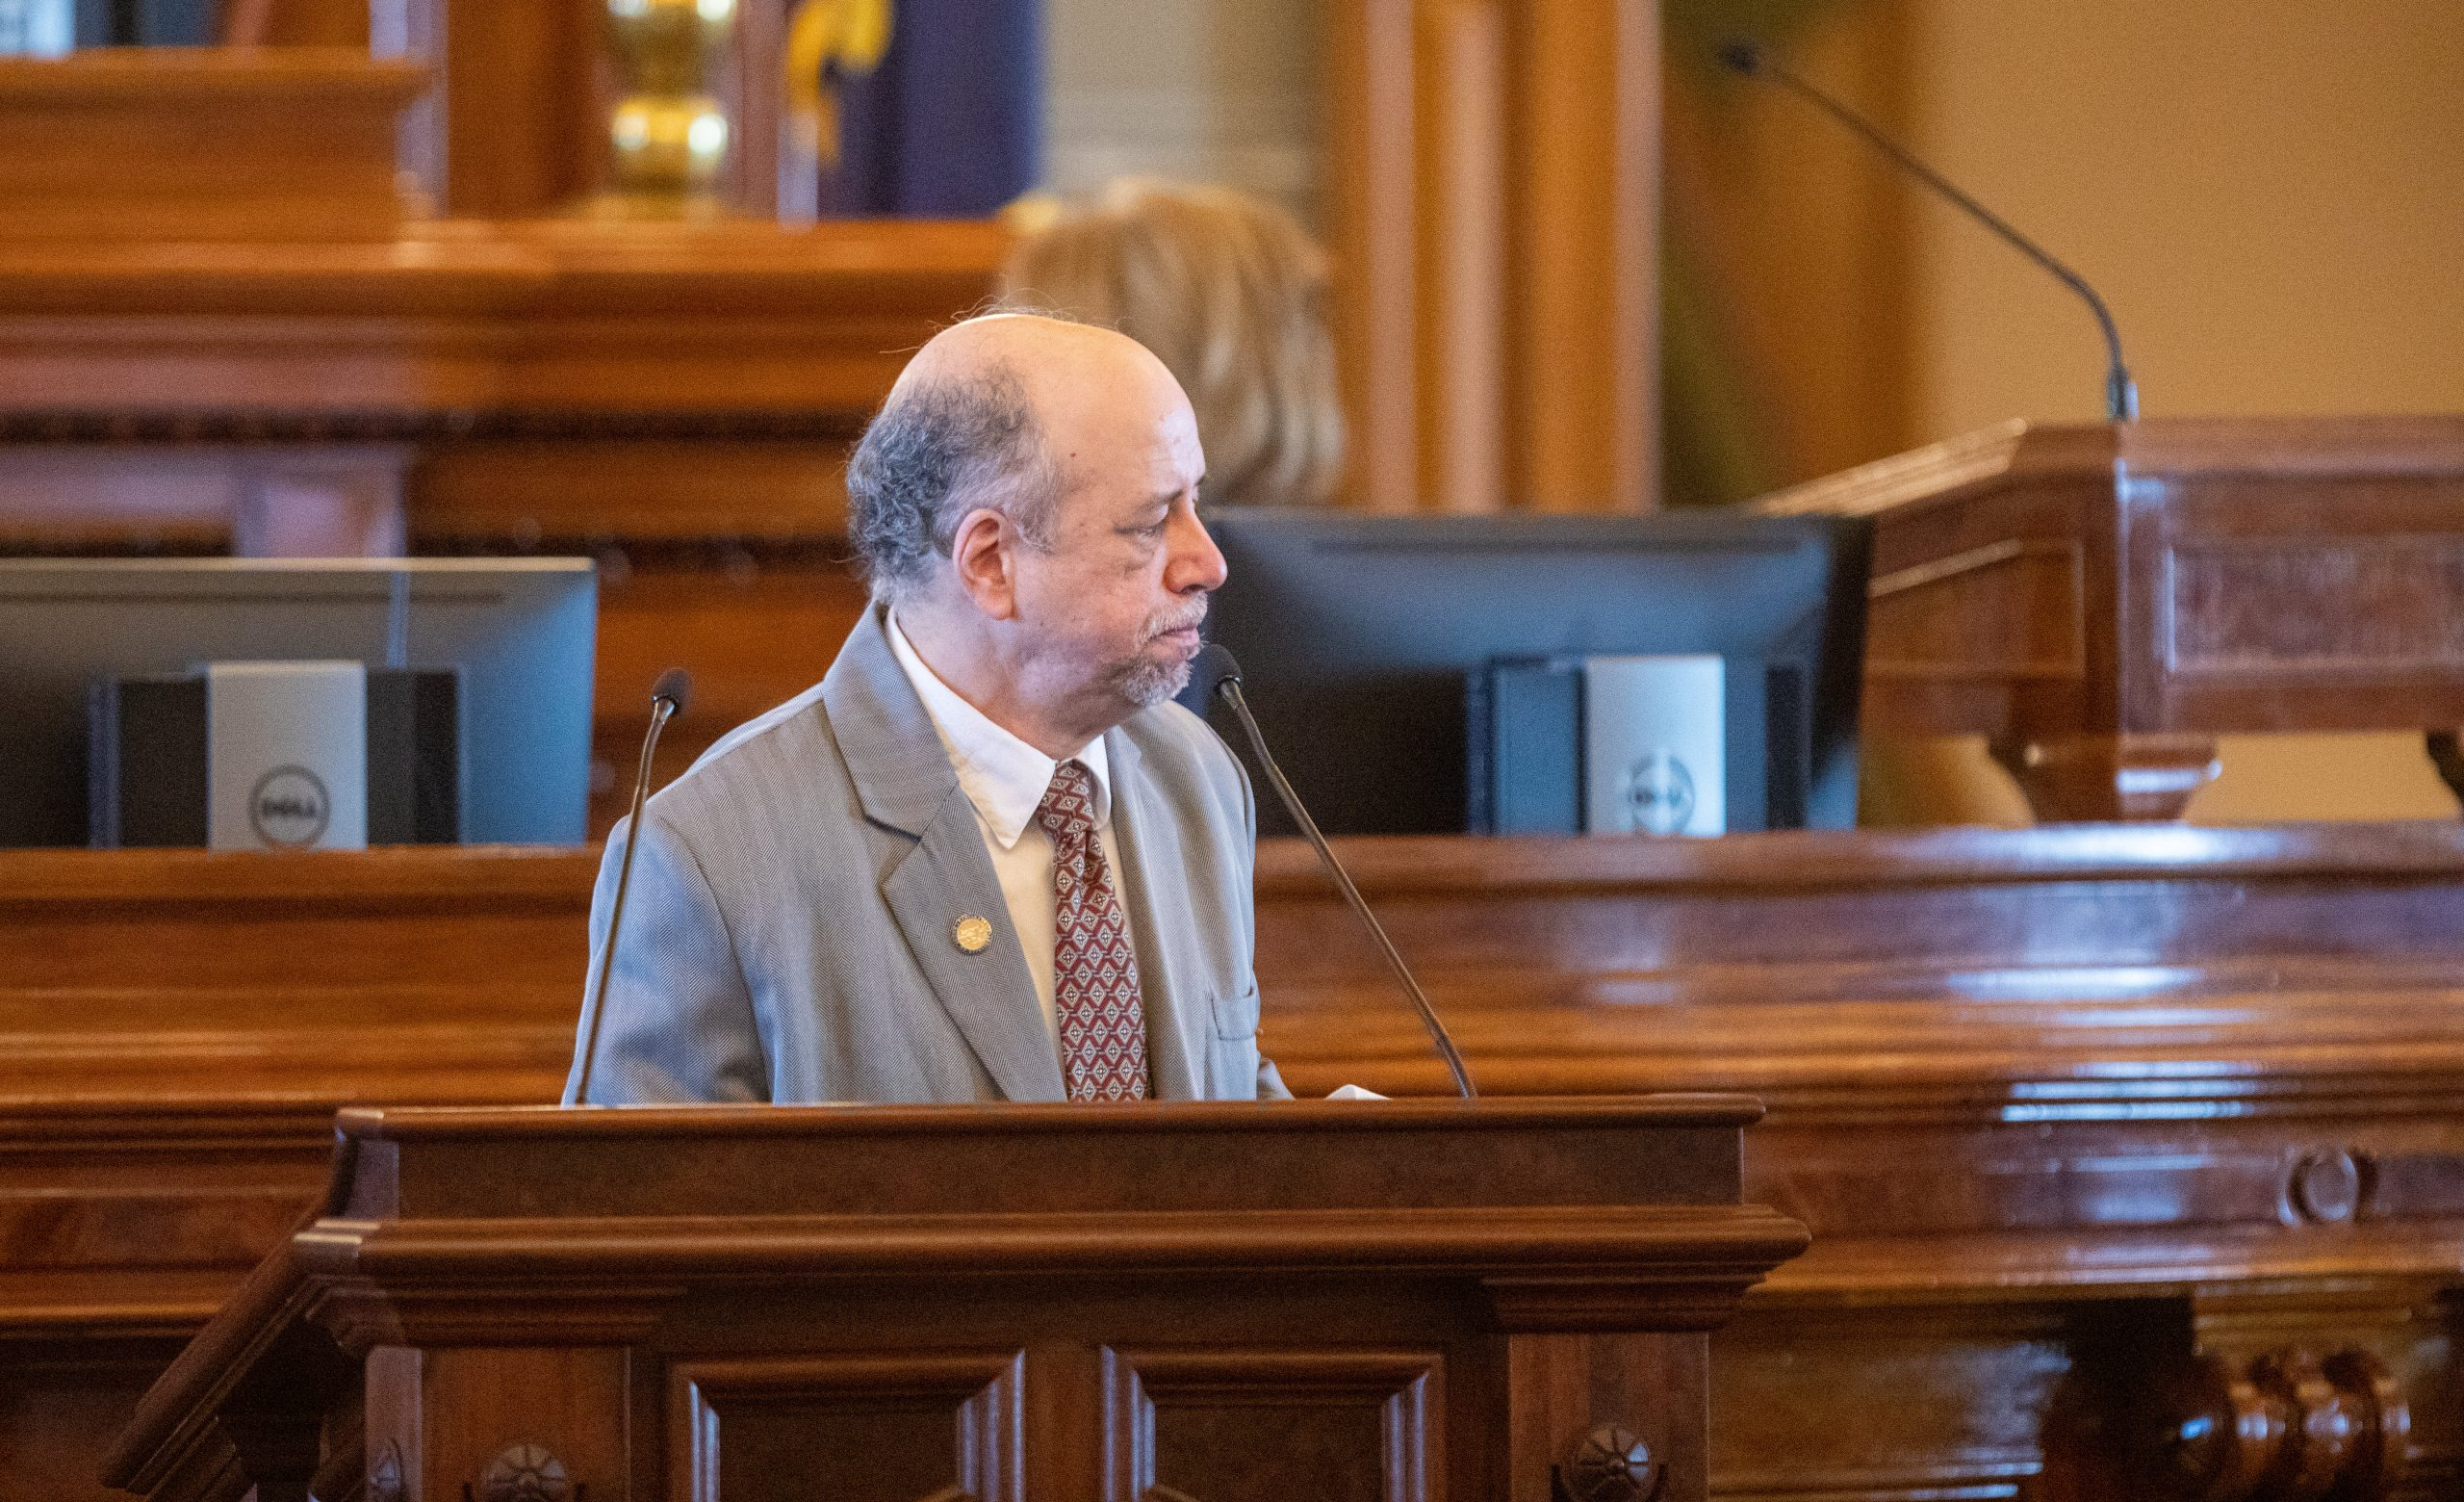 House Minority Leader Tom Sawyer, a Wichita Democrat, says the 2021 Legislature needs to work hard on a bill to legalize sports gambling because the state government needs the new revenue. (Nick Krug for Kansas Reflector)